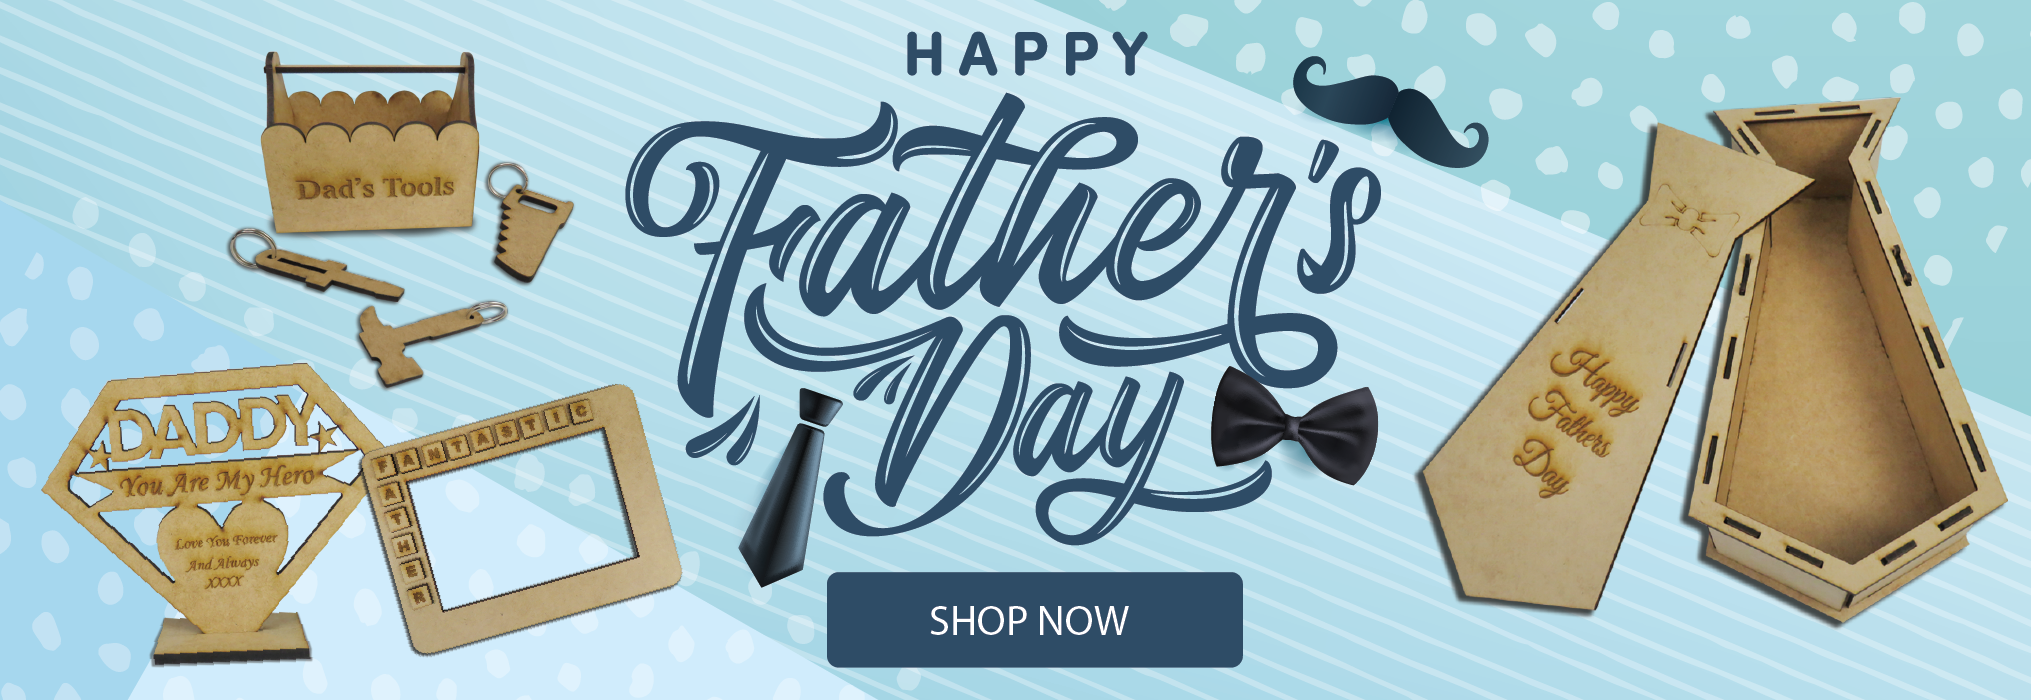 fathers-day-shop-now